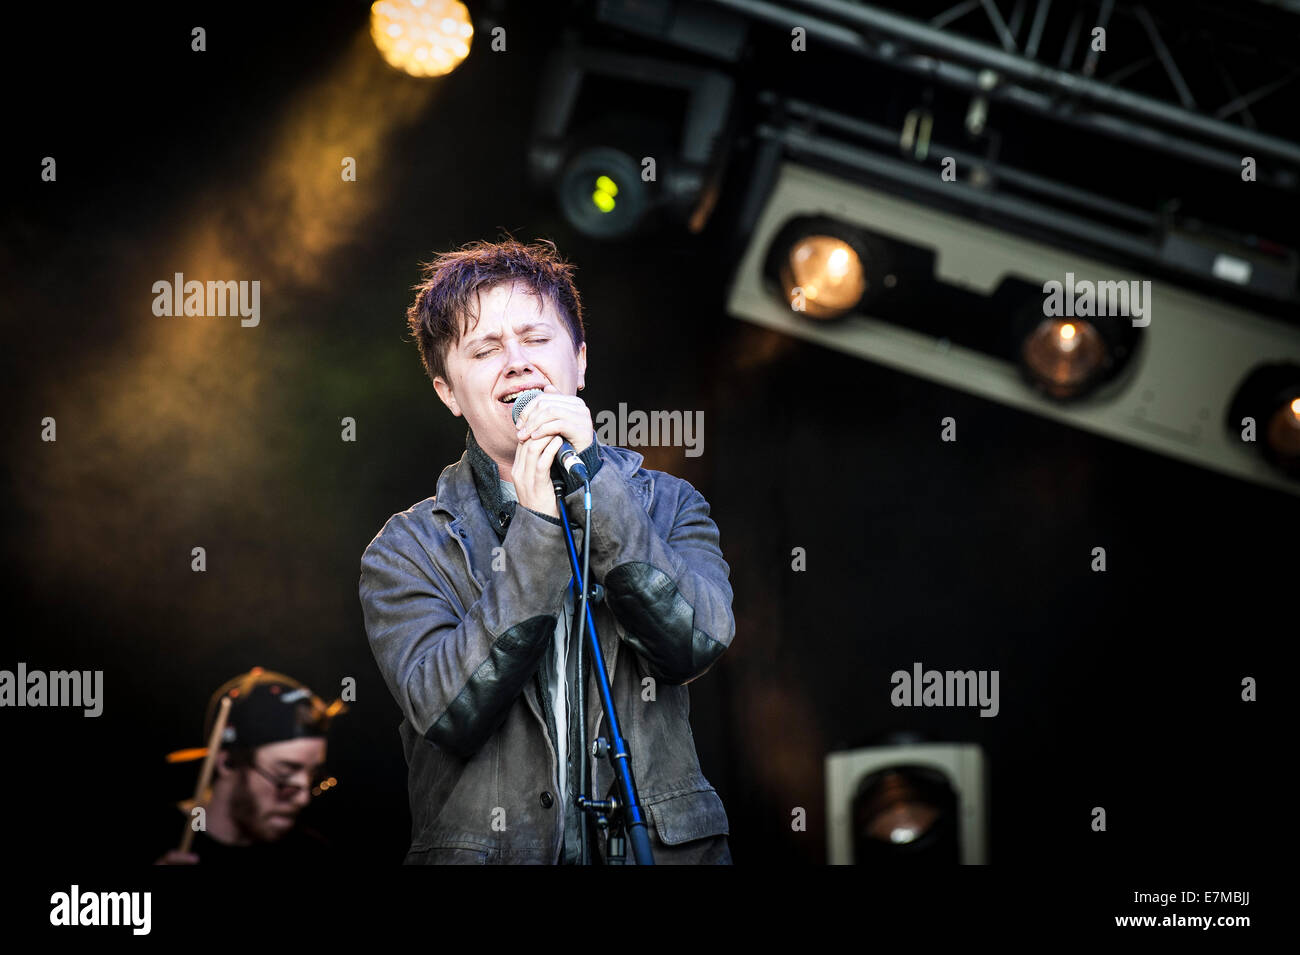 Nothing But Thieves performing at the Brownstock Festival in Essex. - Stock Image